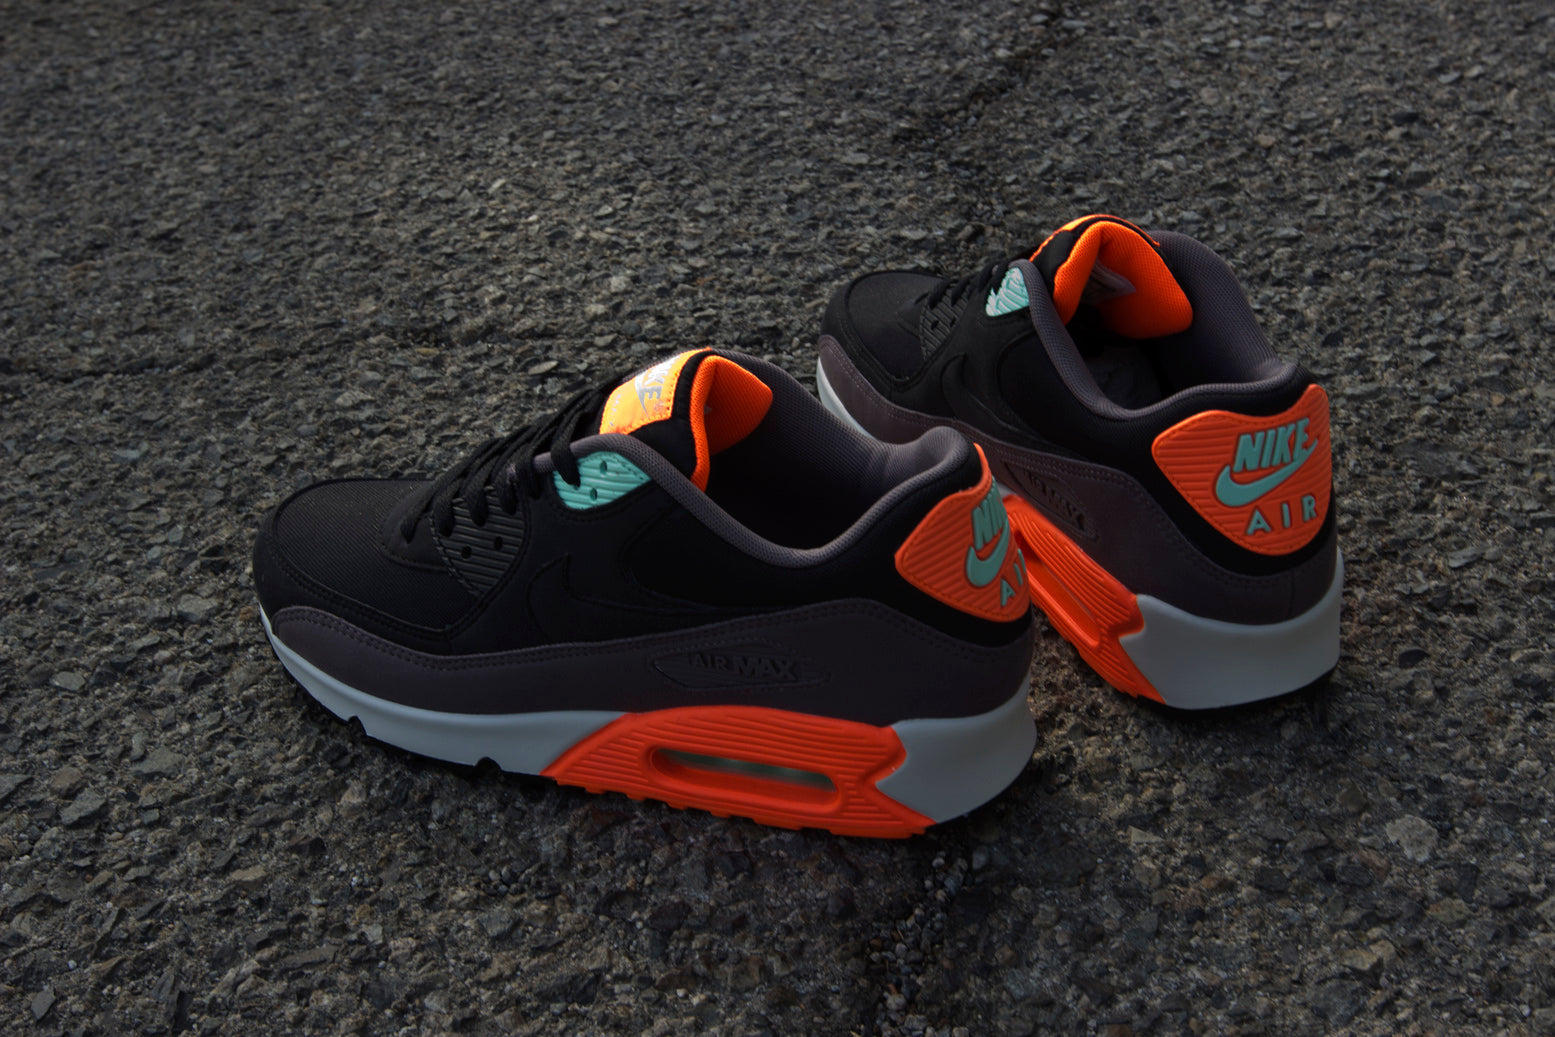 Nike Air Max 90 Essential Black Hyper Crimson